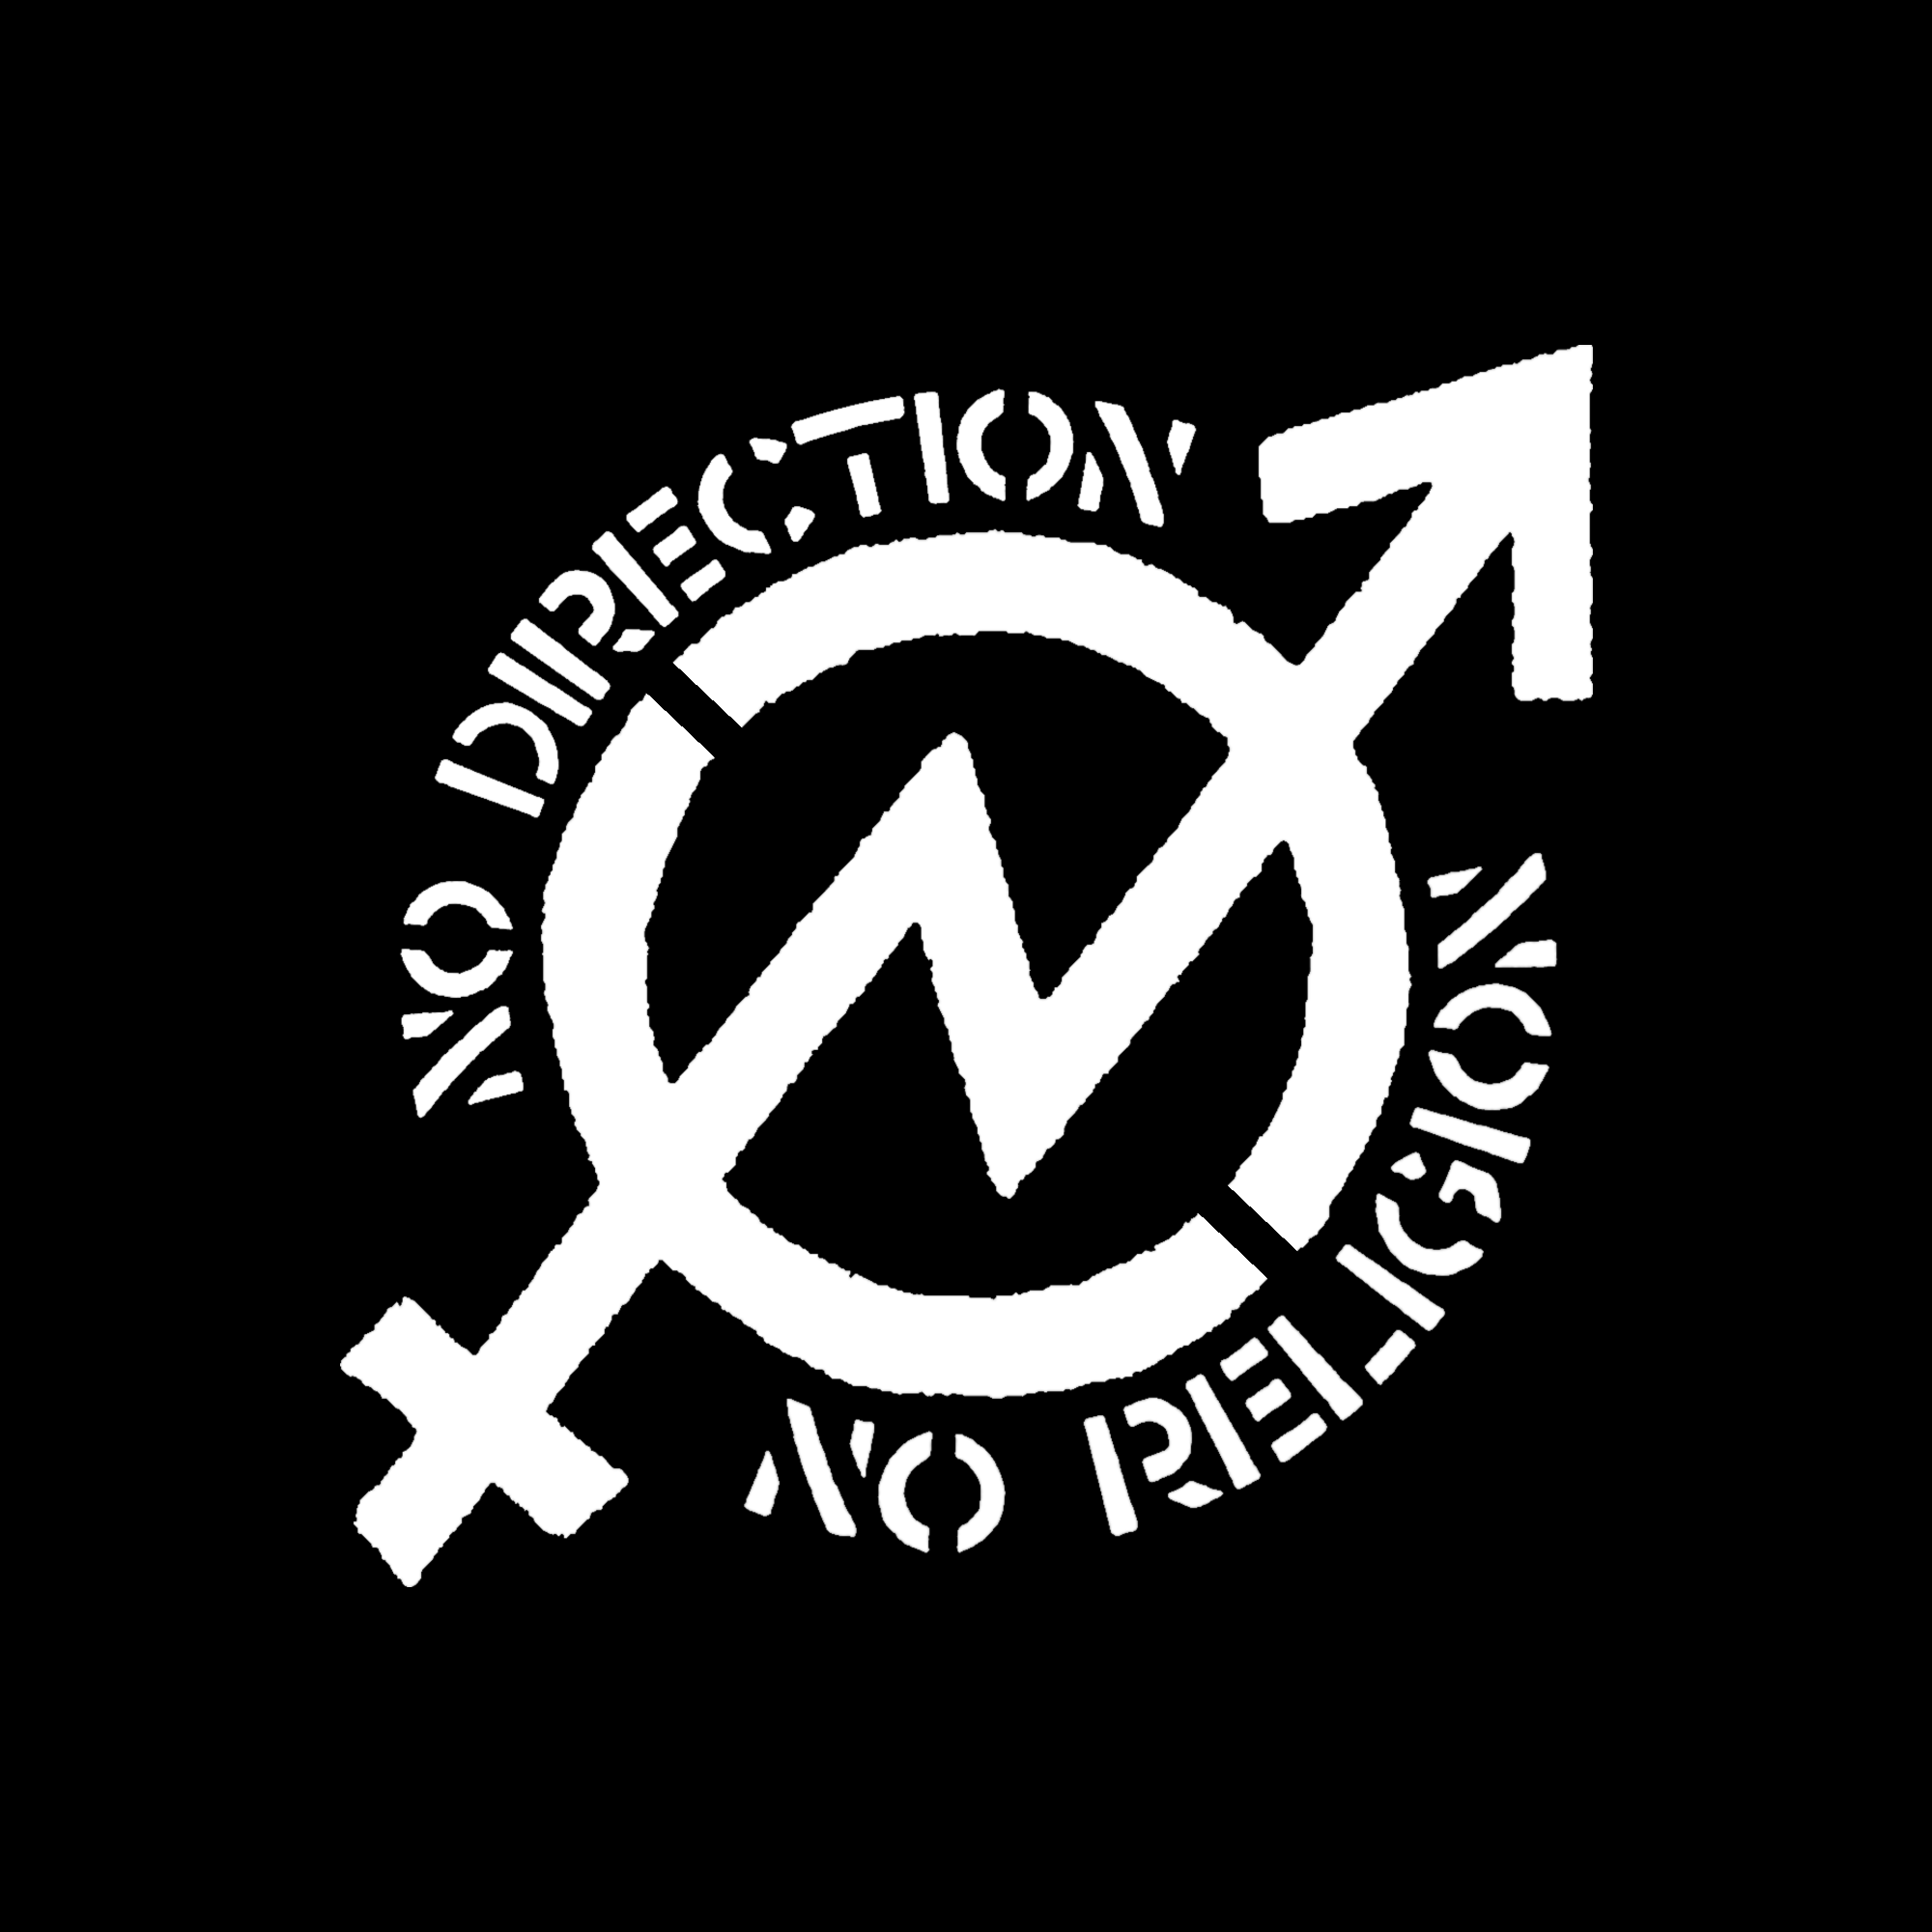 Squatters No Direction No Religion tee